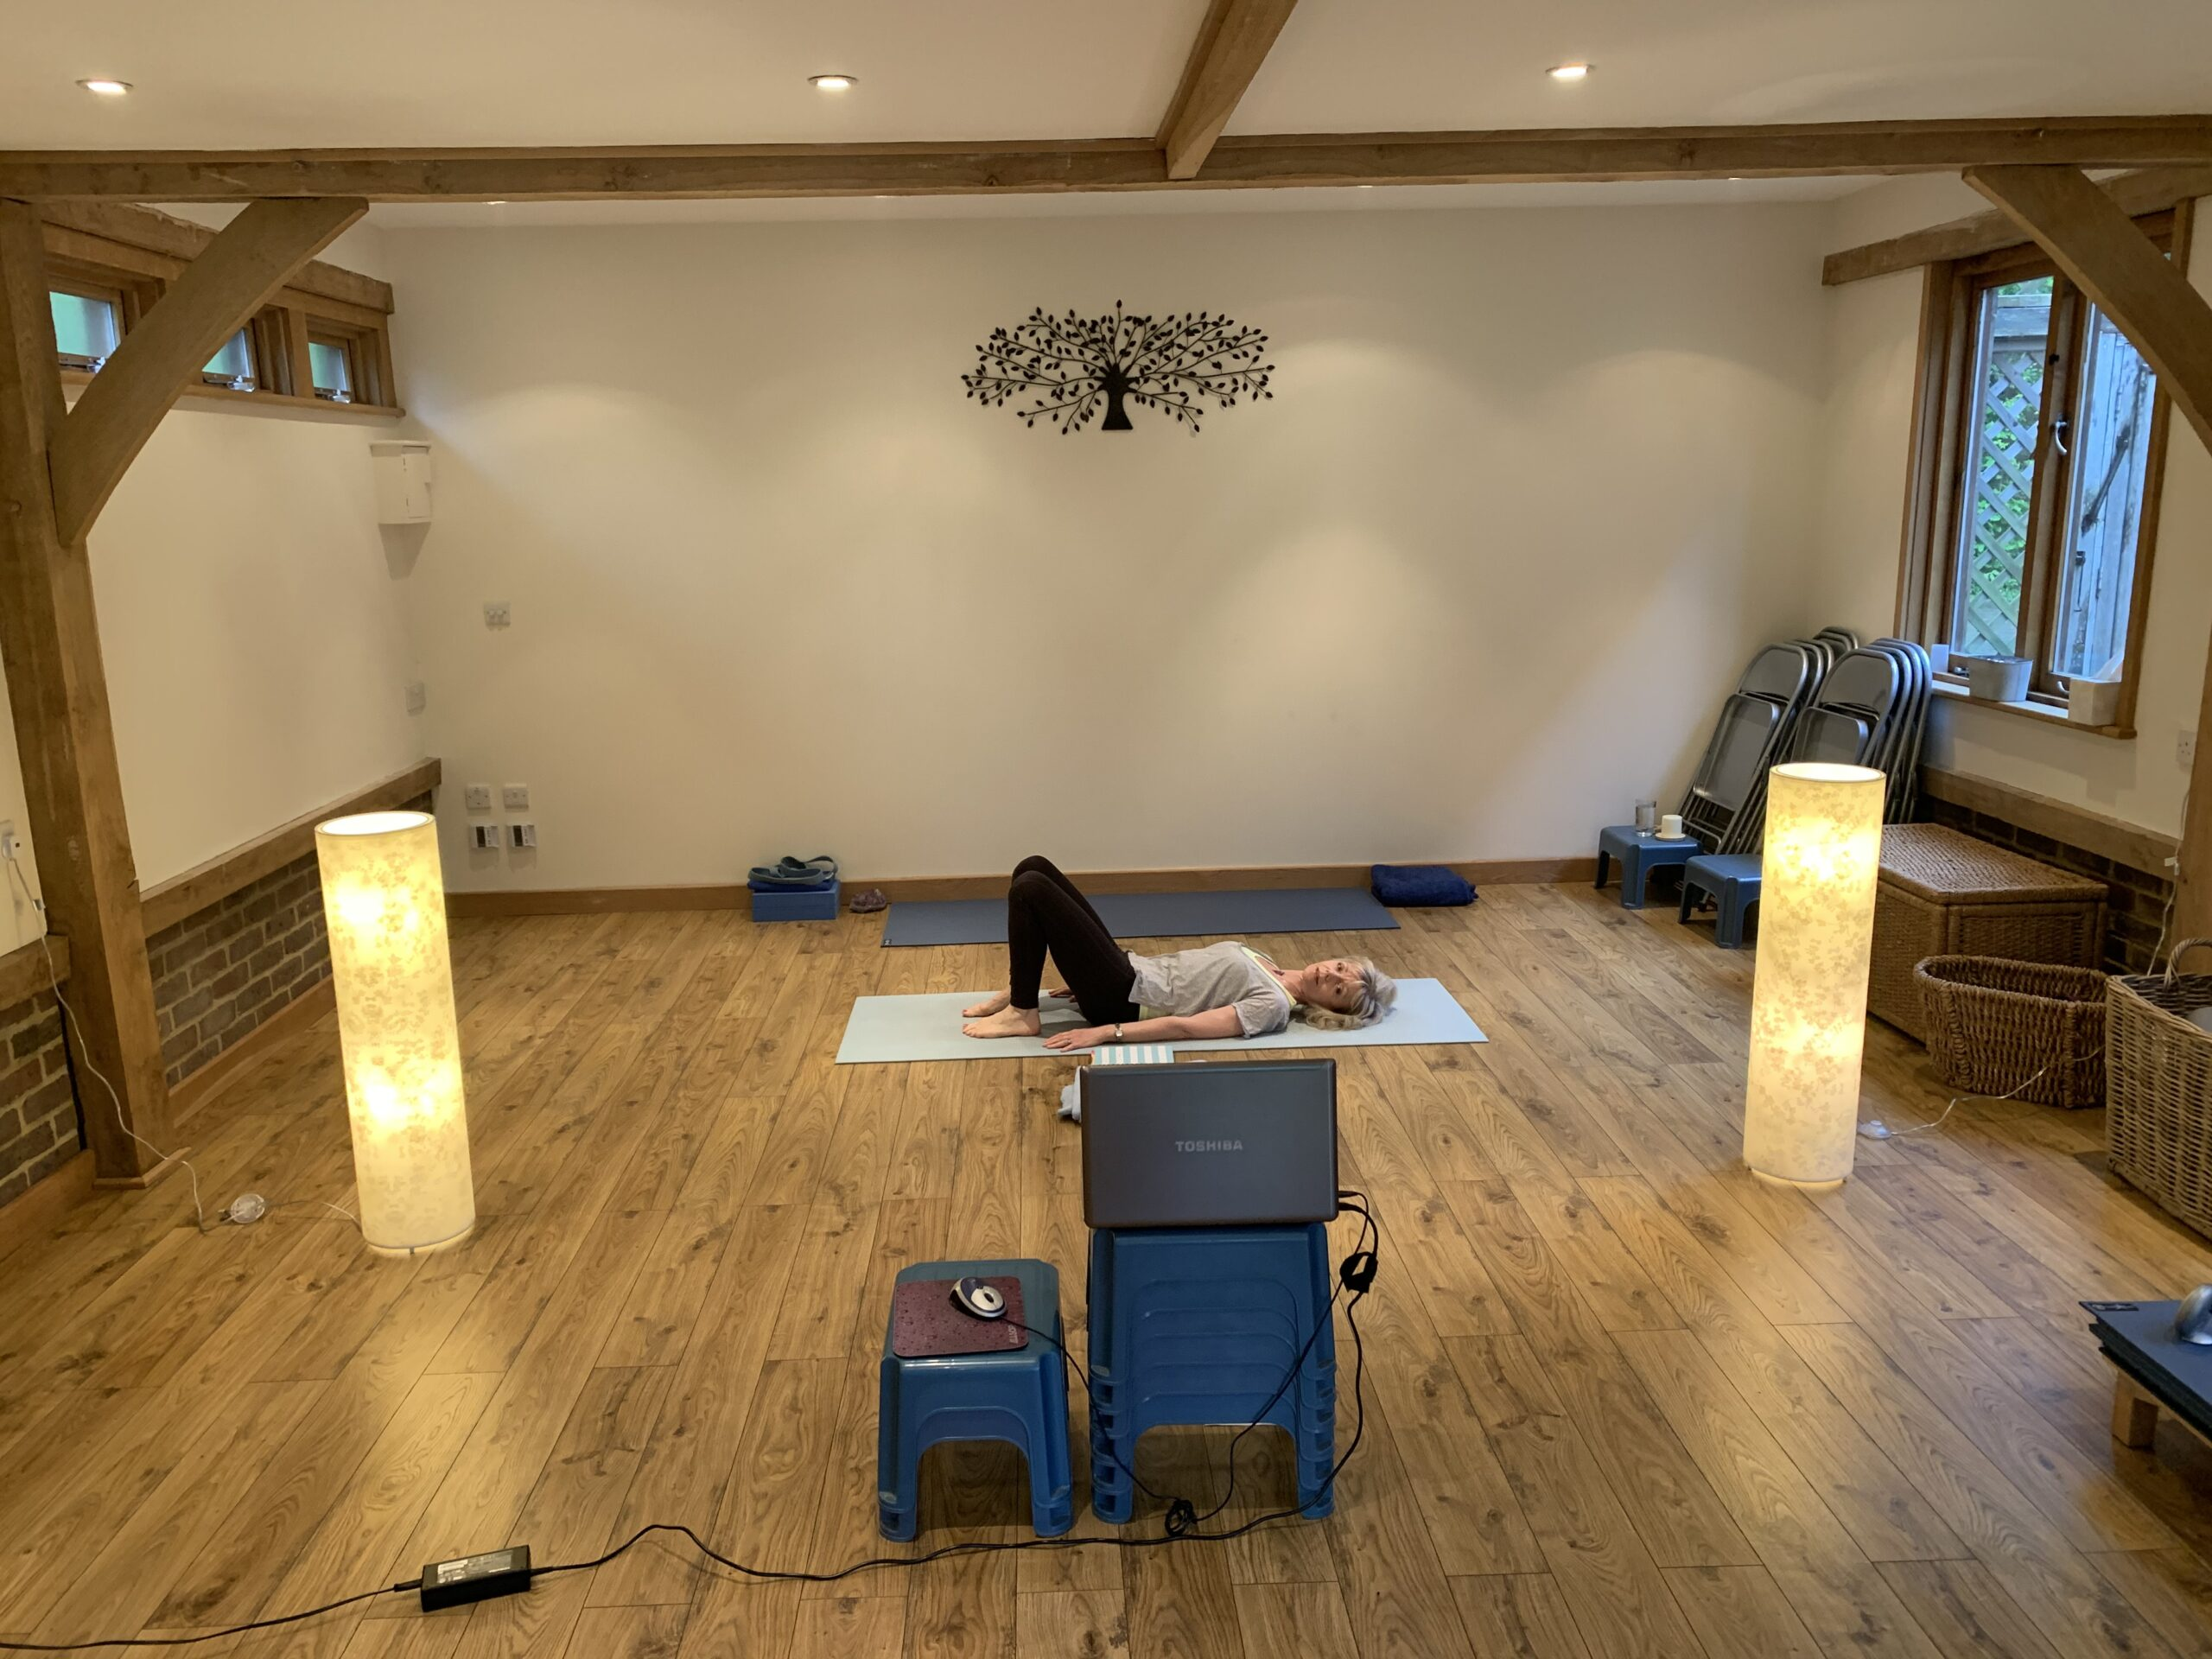 Sarah Church shows Relaxation & Meditation classes Online.